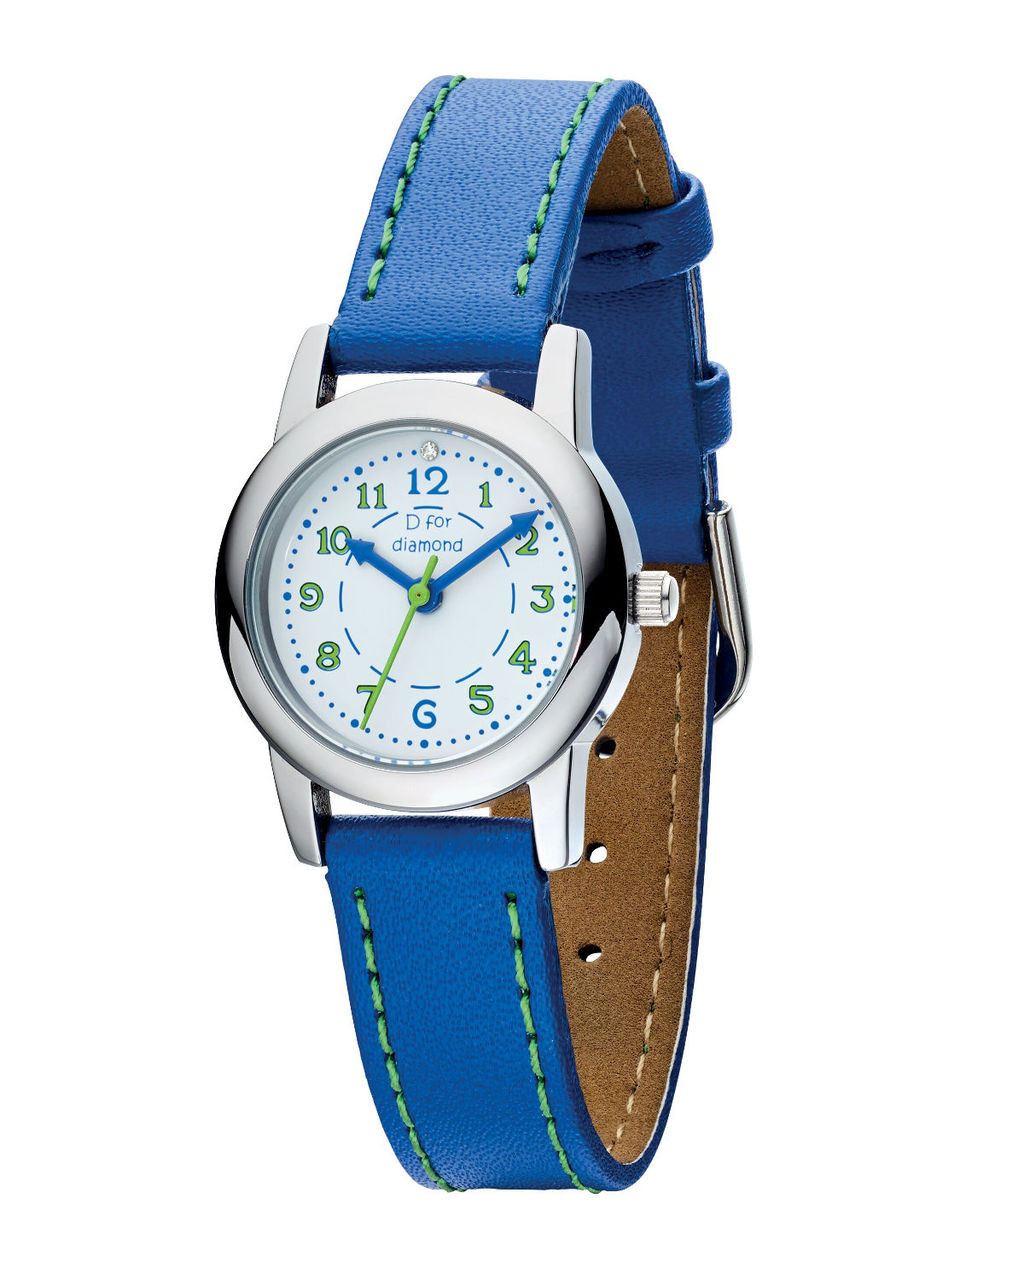 Shop Zazzle's selection of customizable Boys watches & choose your favorite design from our thousands of spectacular options.